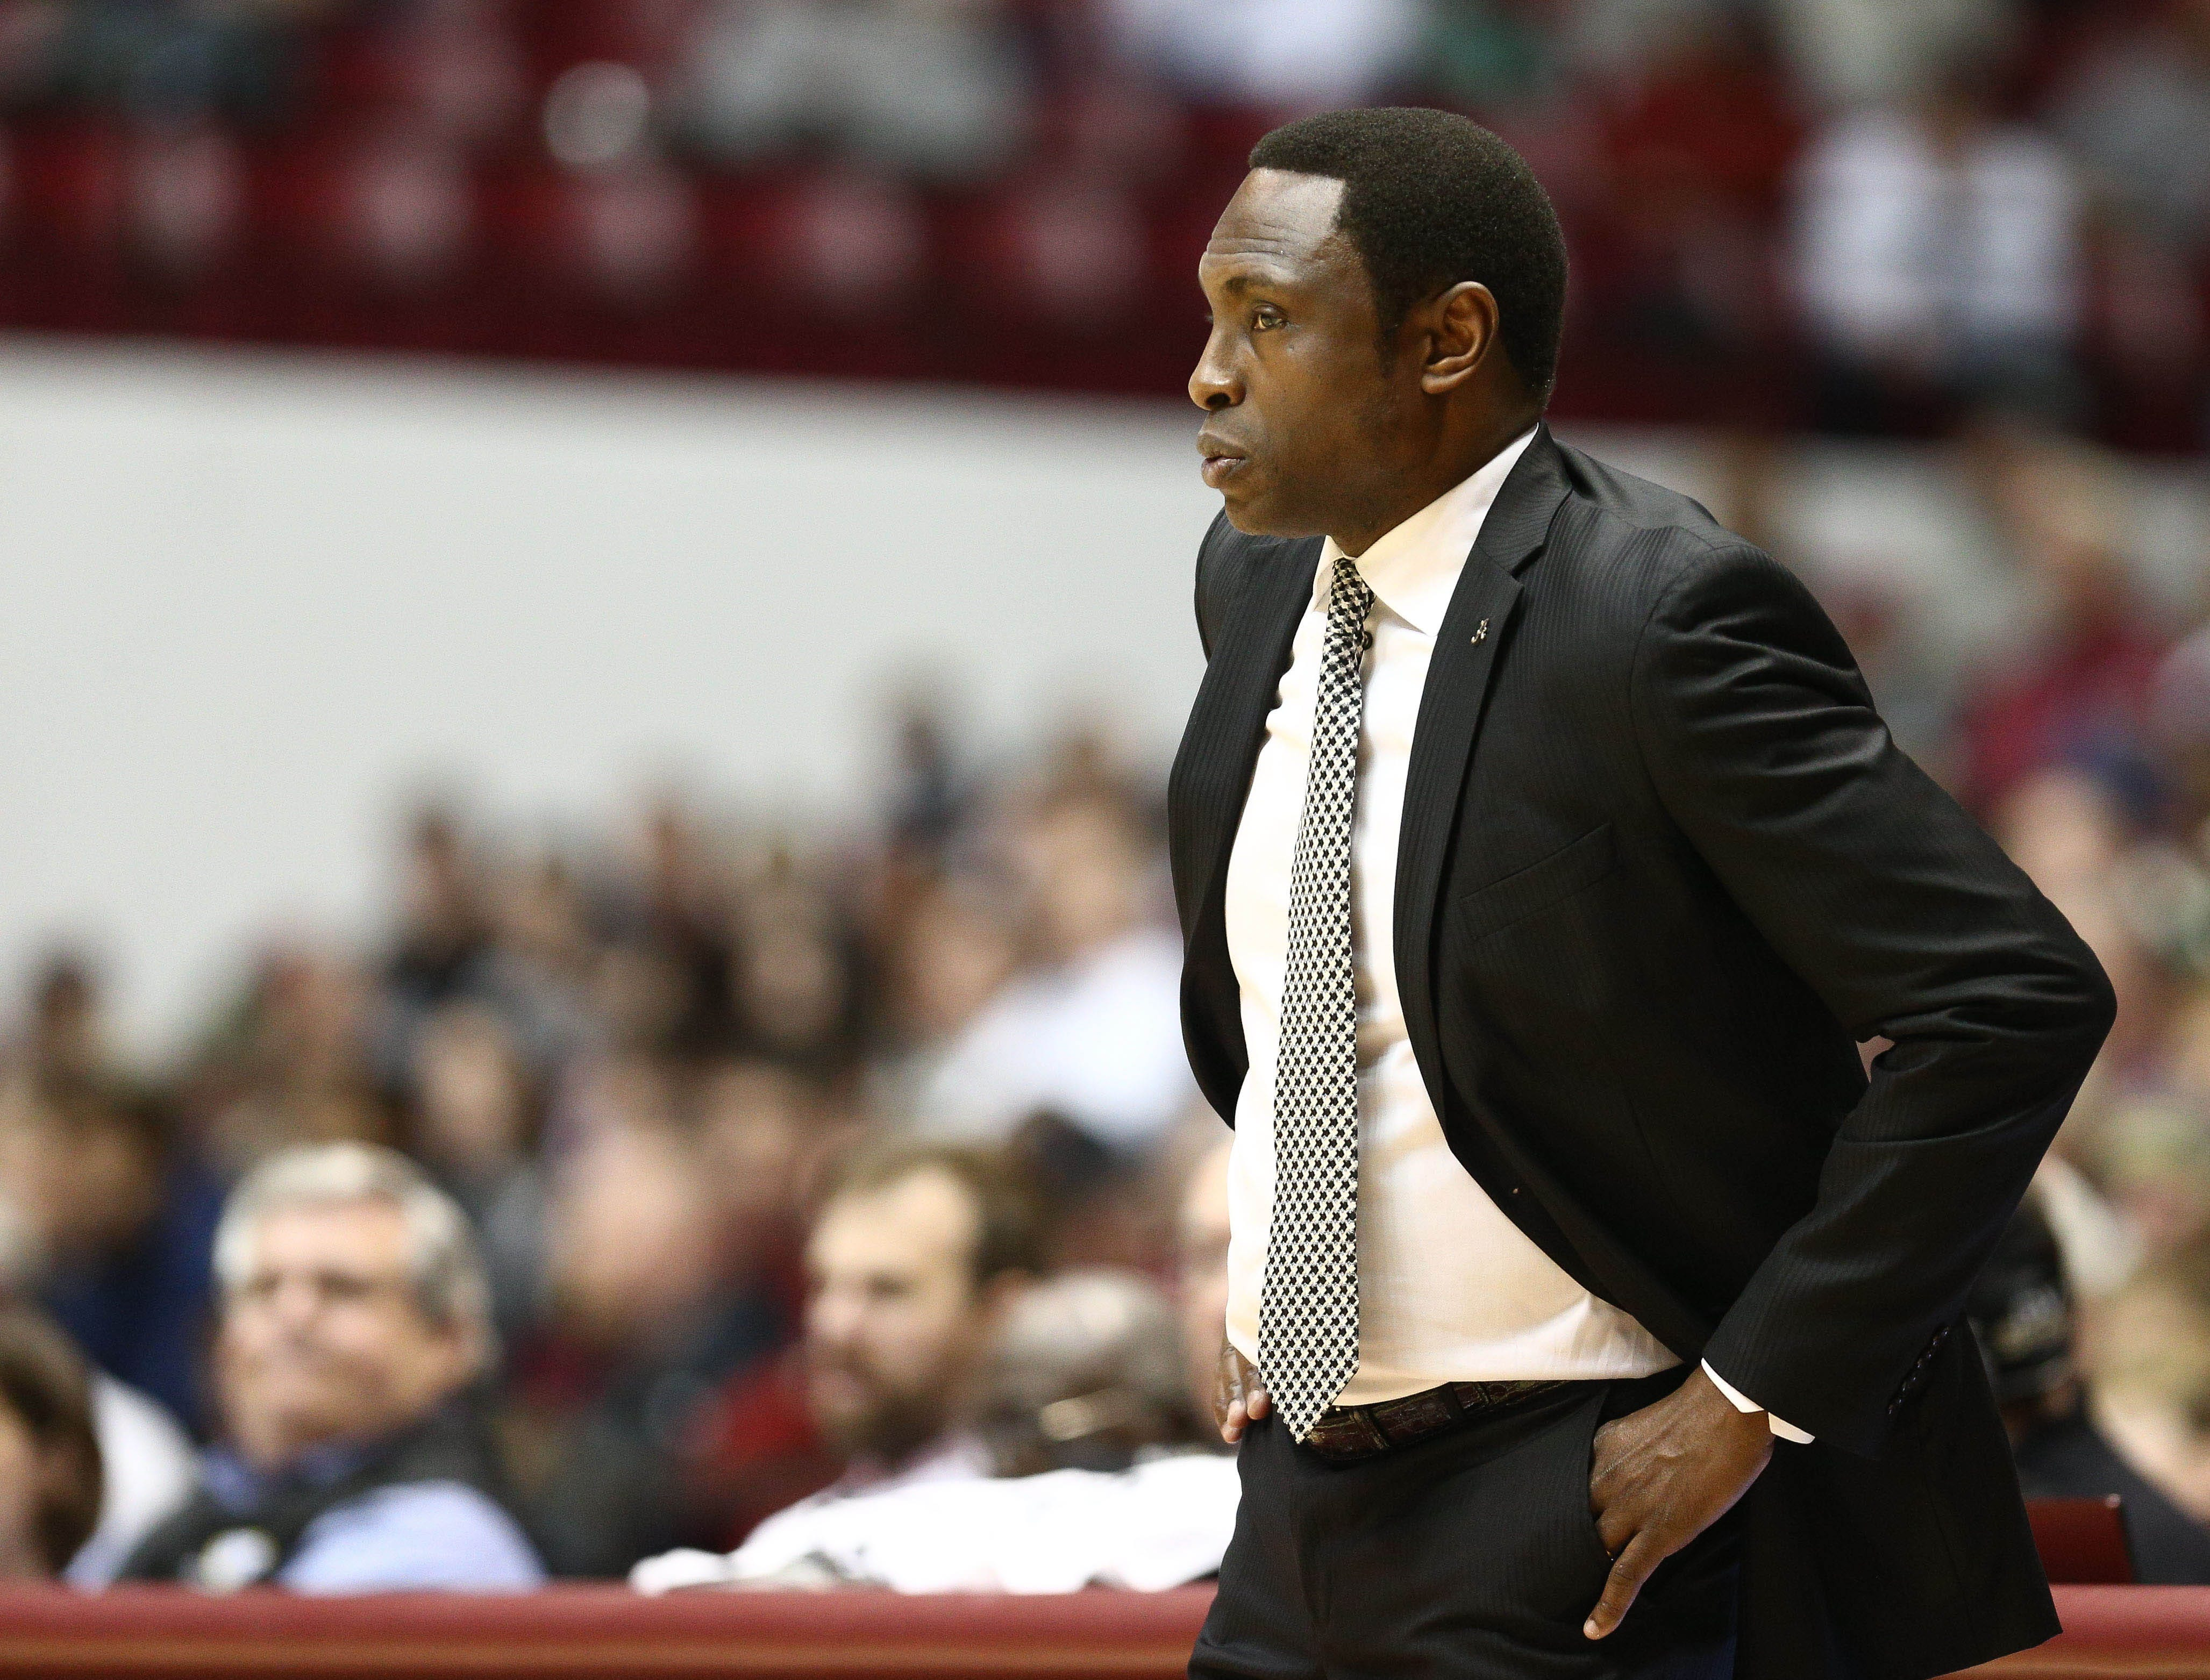 Jan 12, 2019; Tuscaloosa, AL, USA; Alabama Crimson Tide head coach Avery Johnson during the second half against Texas A&M Aggies at Coleman Coliseum. Mandatory Credit: Marvin Gentry-USA TODAY Sports